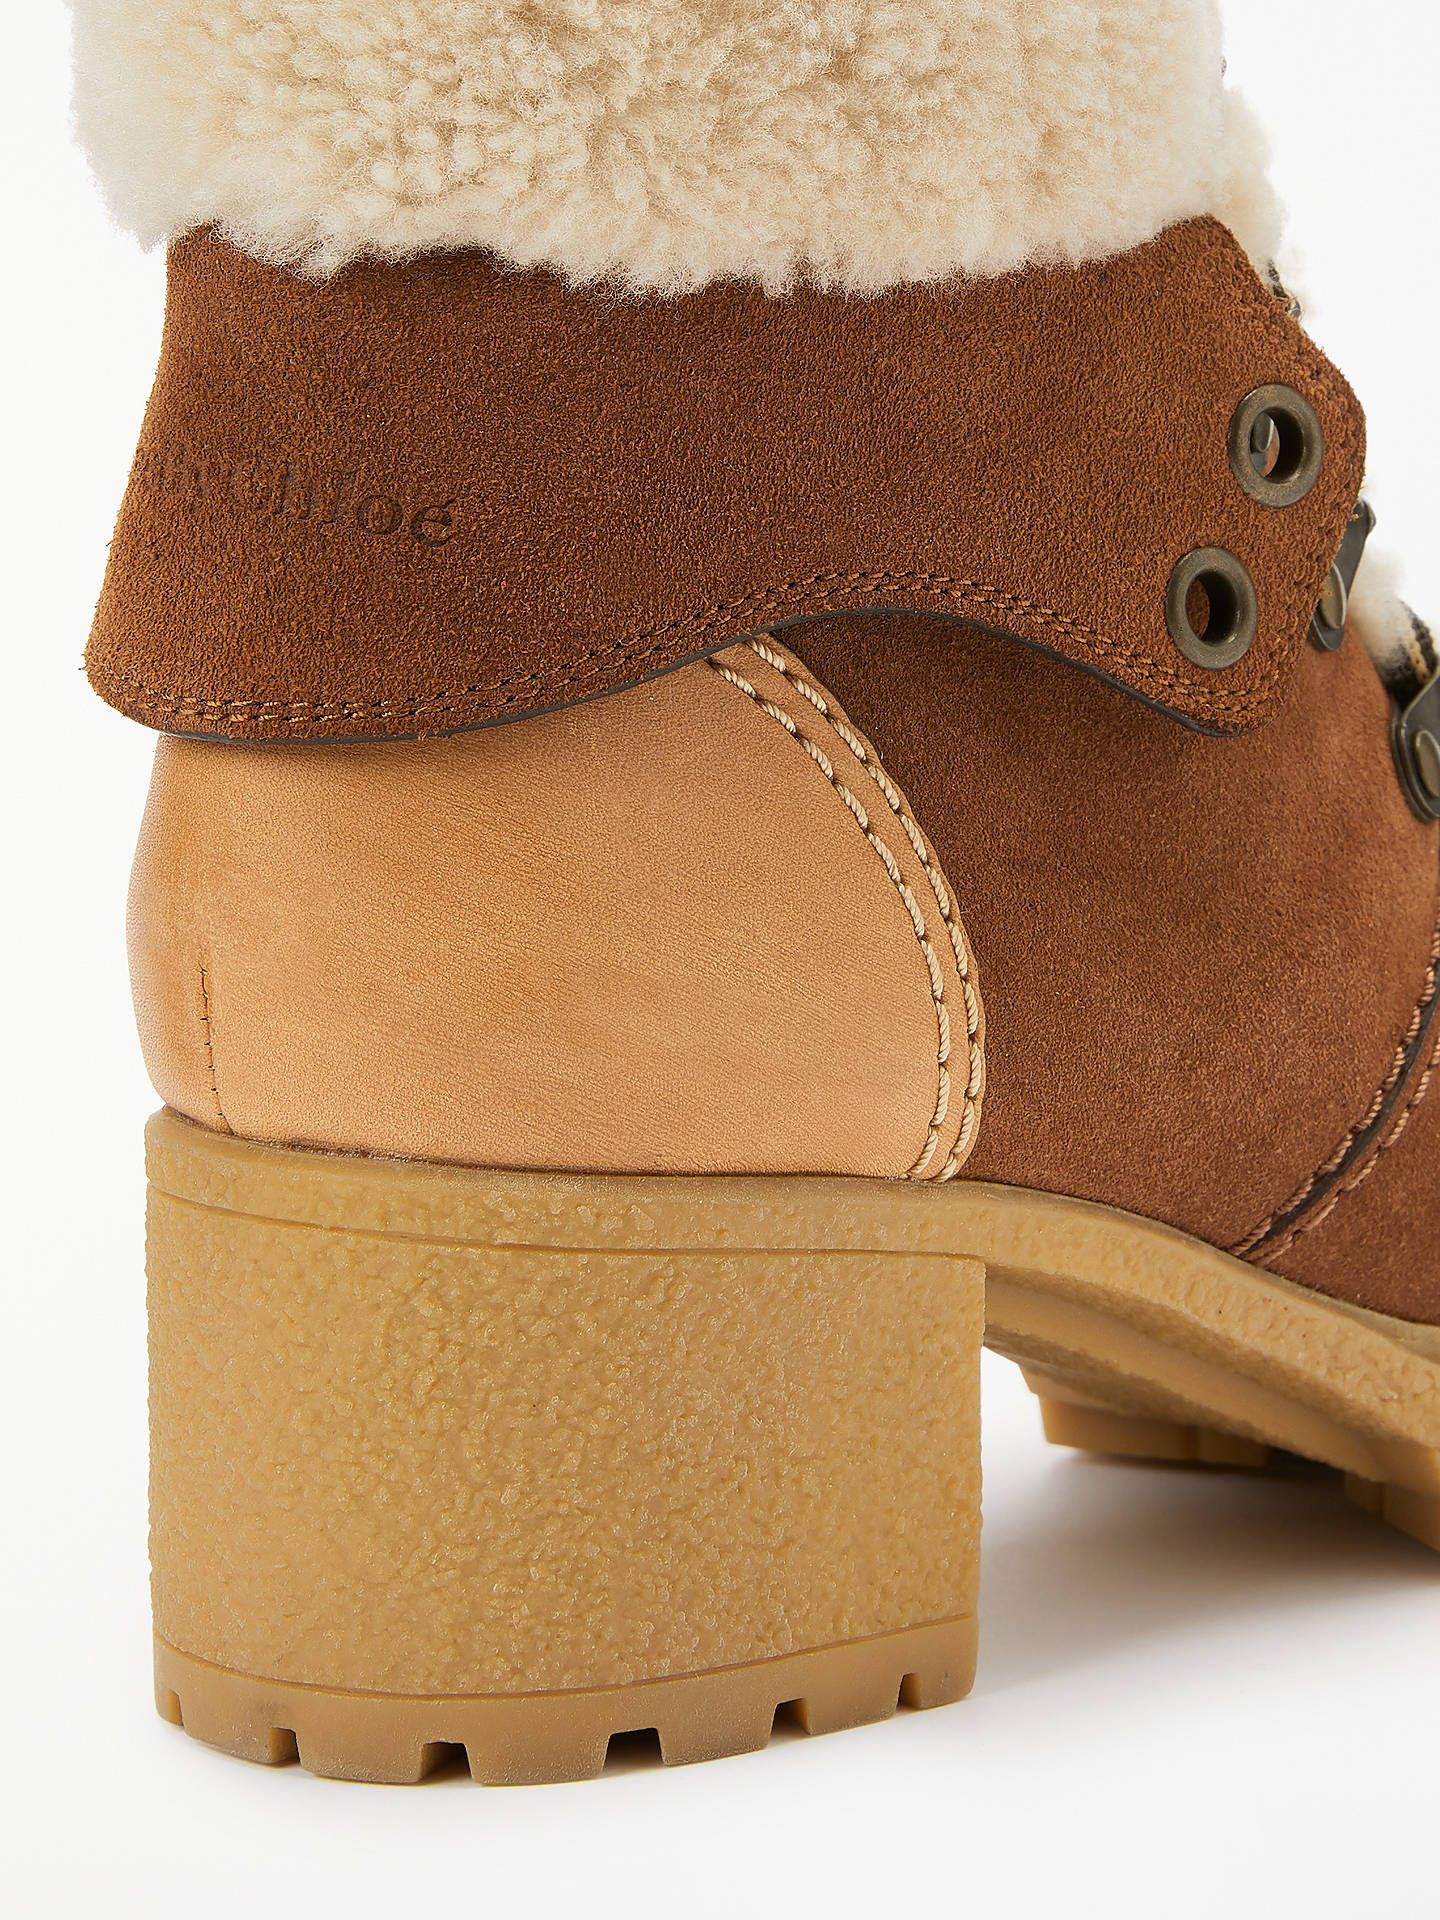 Buy See By Chloé Lace Up Block Heel Ankle Boots, Brown Suede, 7 Online at johnlewis.com